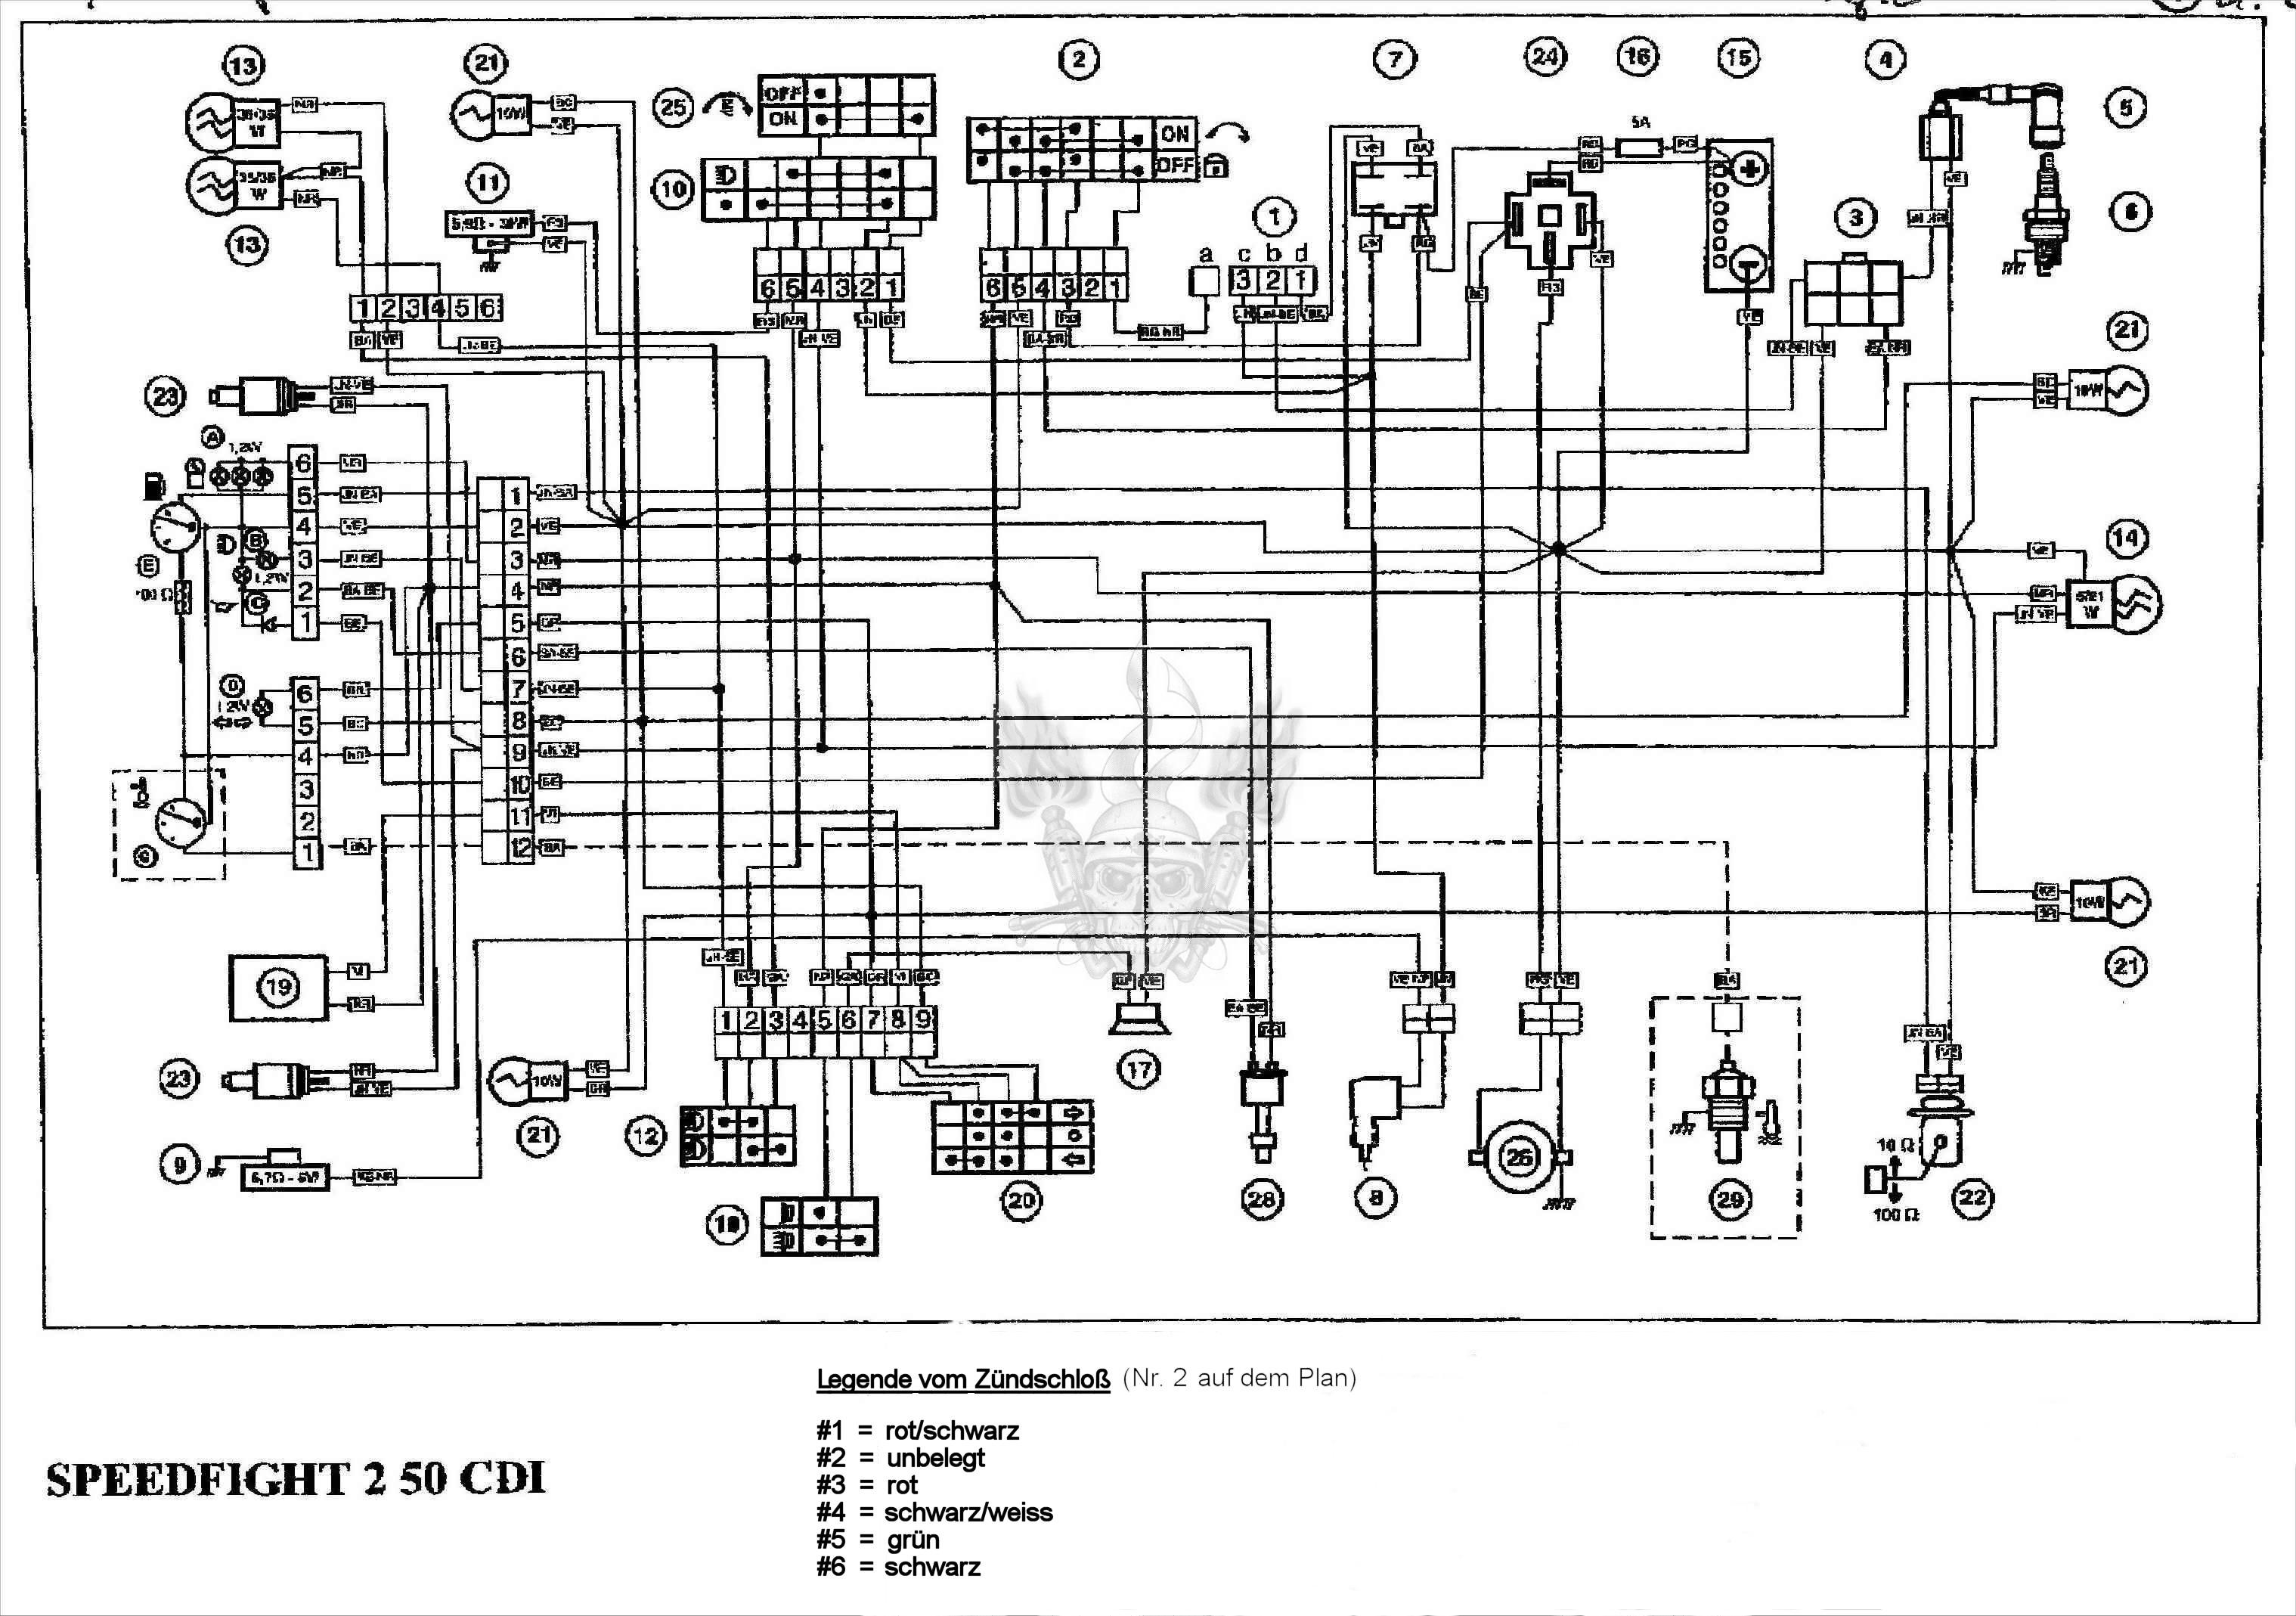 Diagram Peugeot Speedfight 2 Wiring Diagram Full Version Hd Quality Wiring Diagram Diagramsmiera Videoproiettori3d It